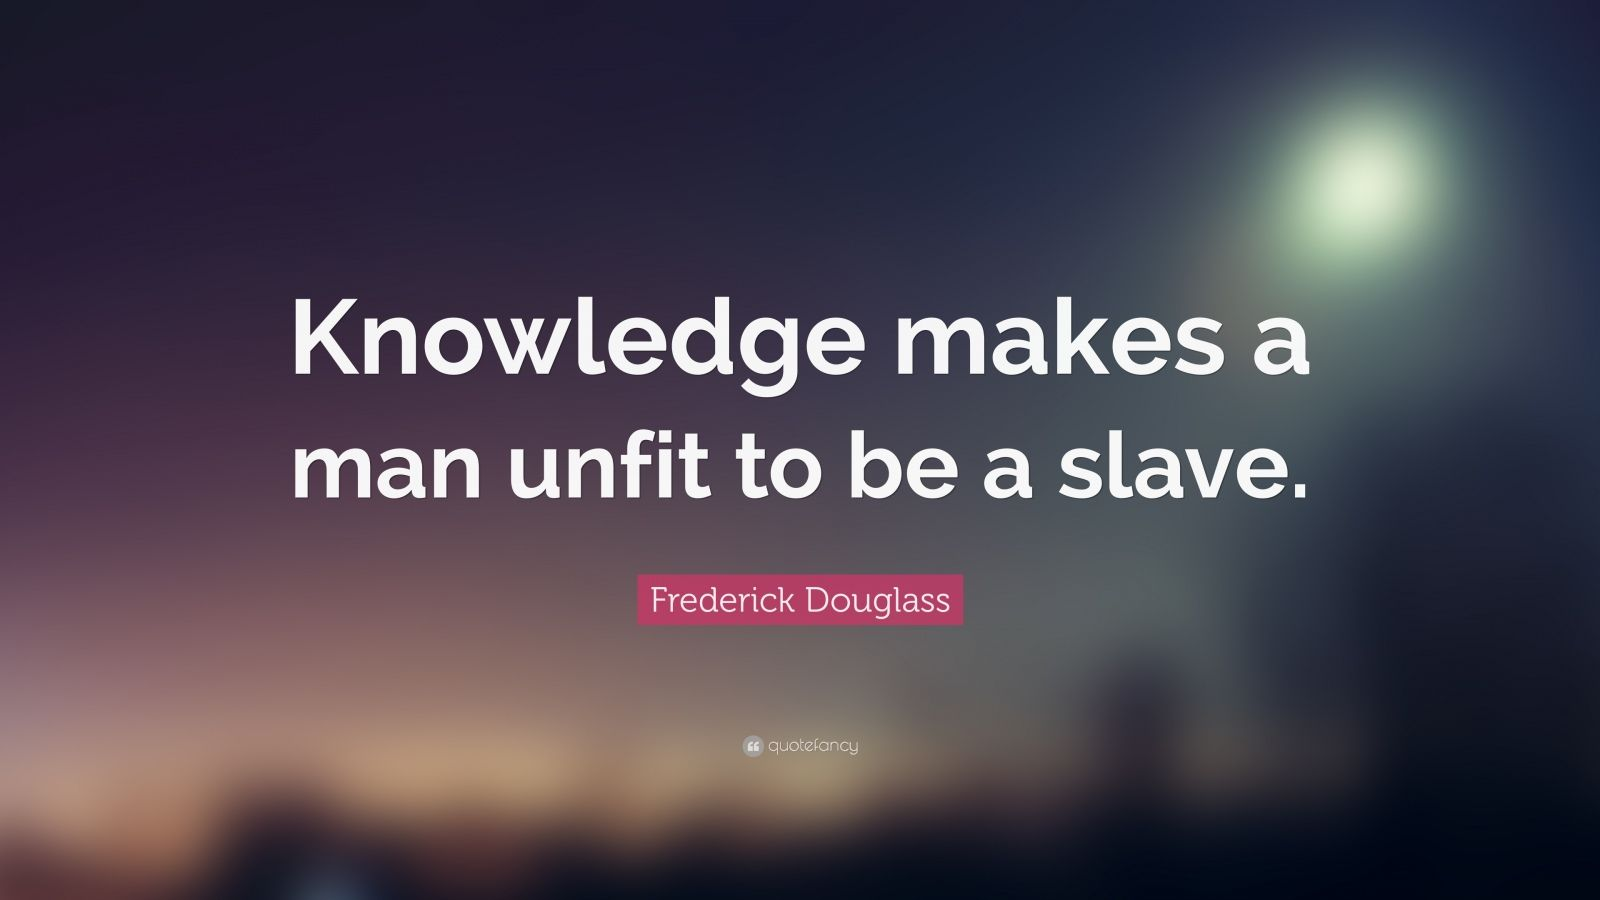 Change Quote Wallpaper Frederick Douglass Quote Knowledge Makes A Man Unfit To